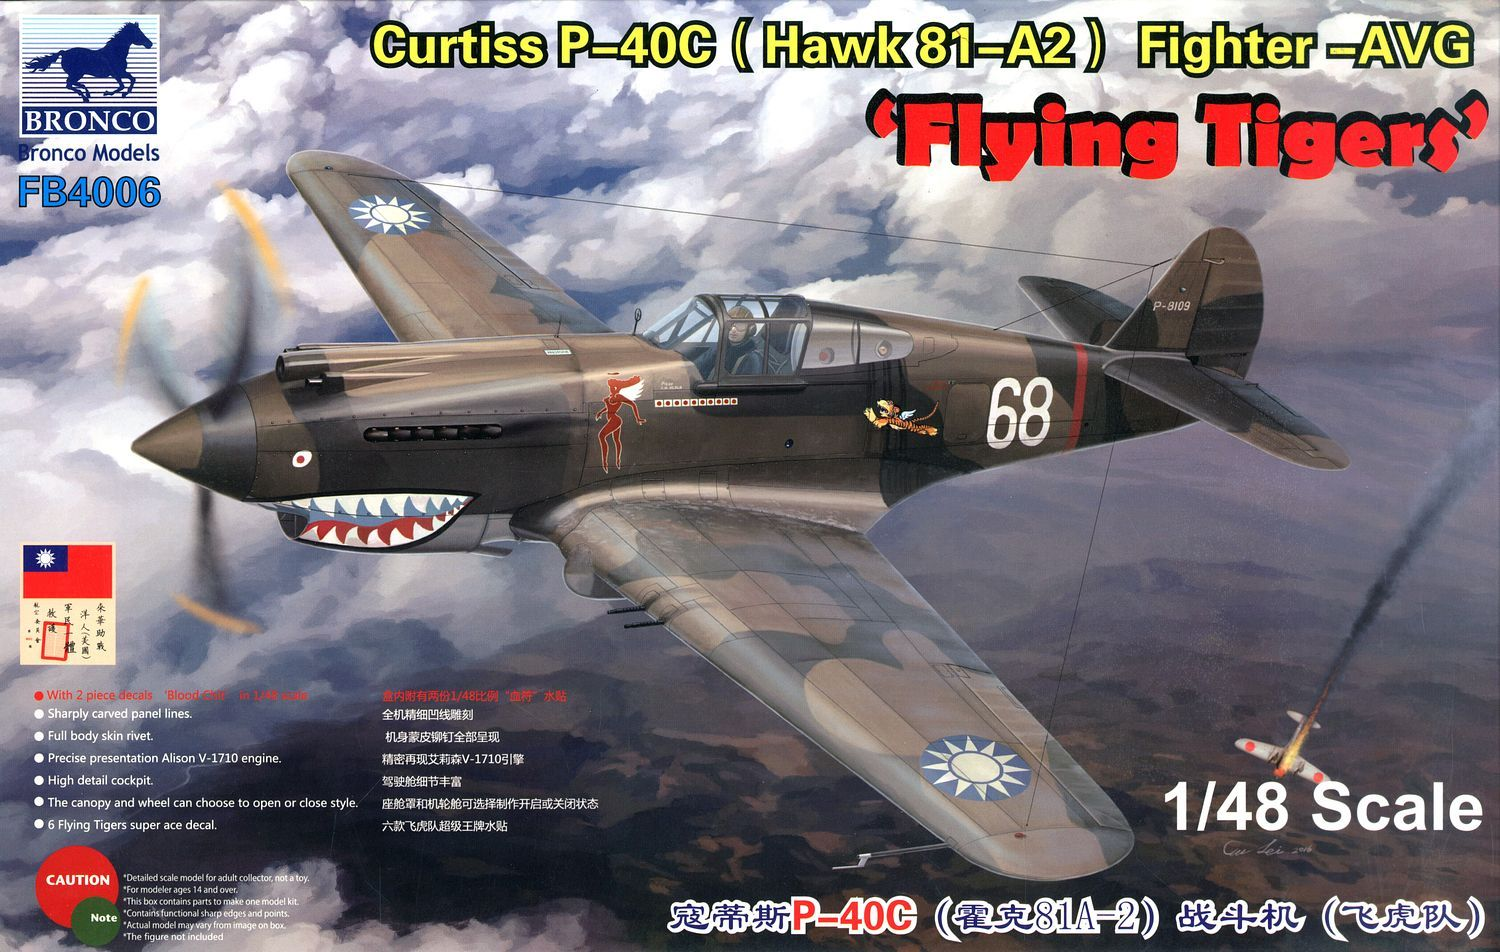 Bronco Models 1/48 Curtiss P-40C(Hawk 81-A2) Fighter -AVG Flying Tigers Aircraft